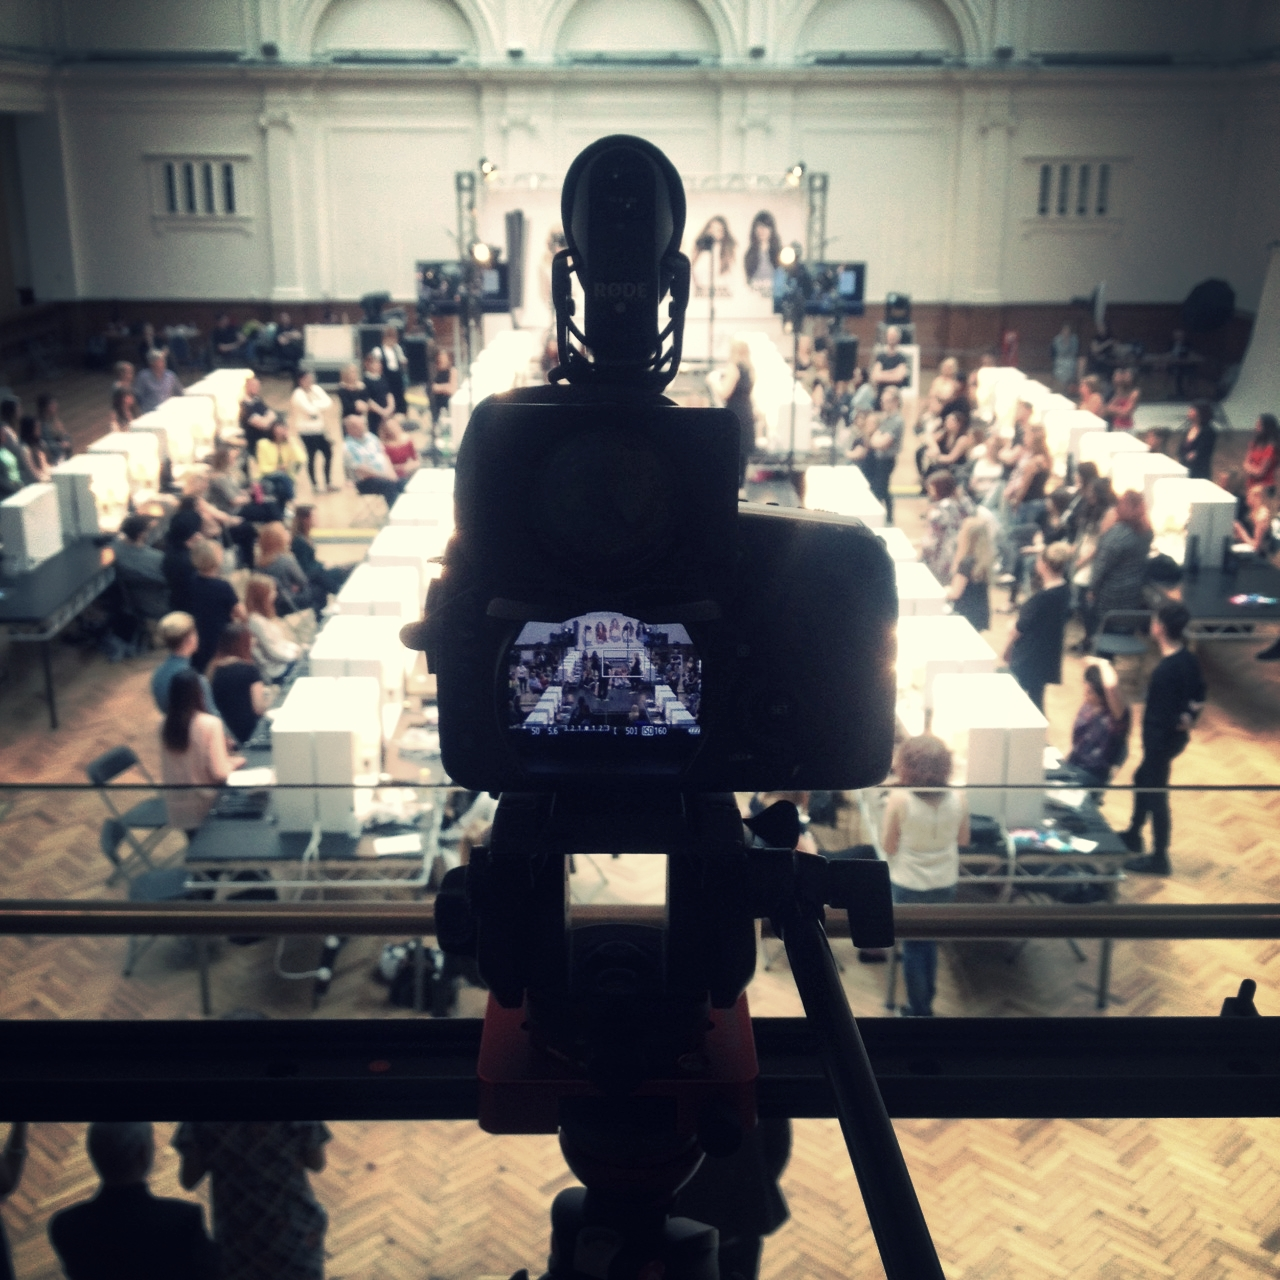 ghd take over the Royal Horticultural Halls for the day